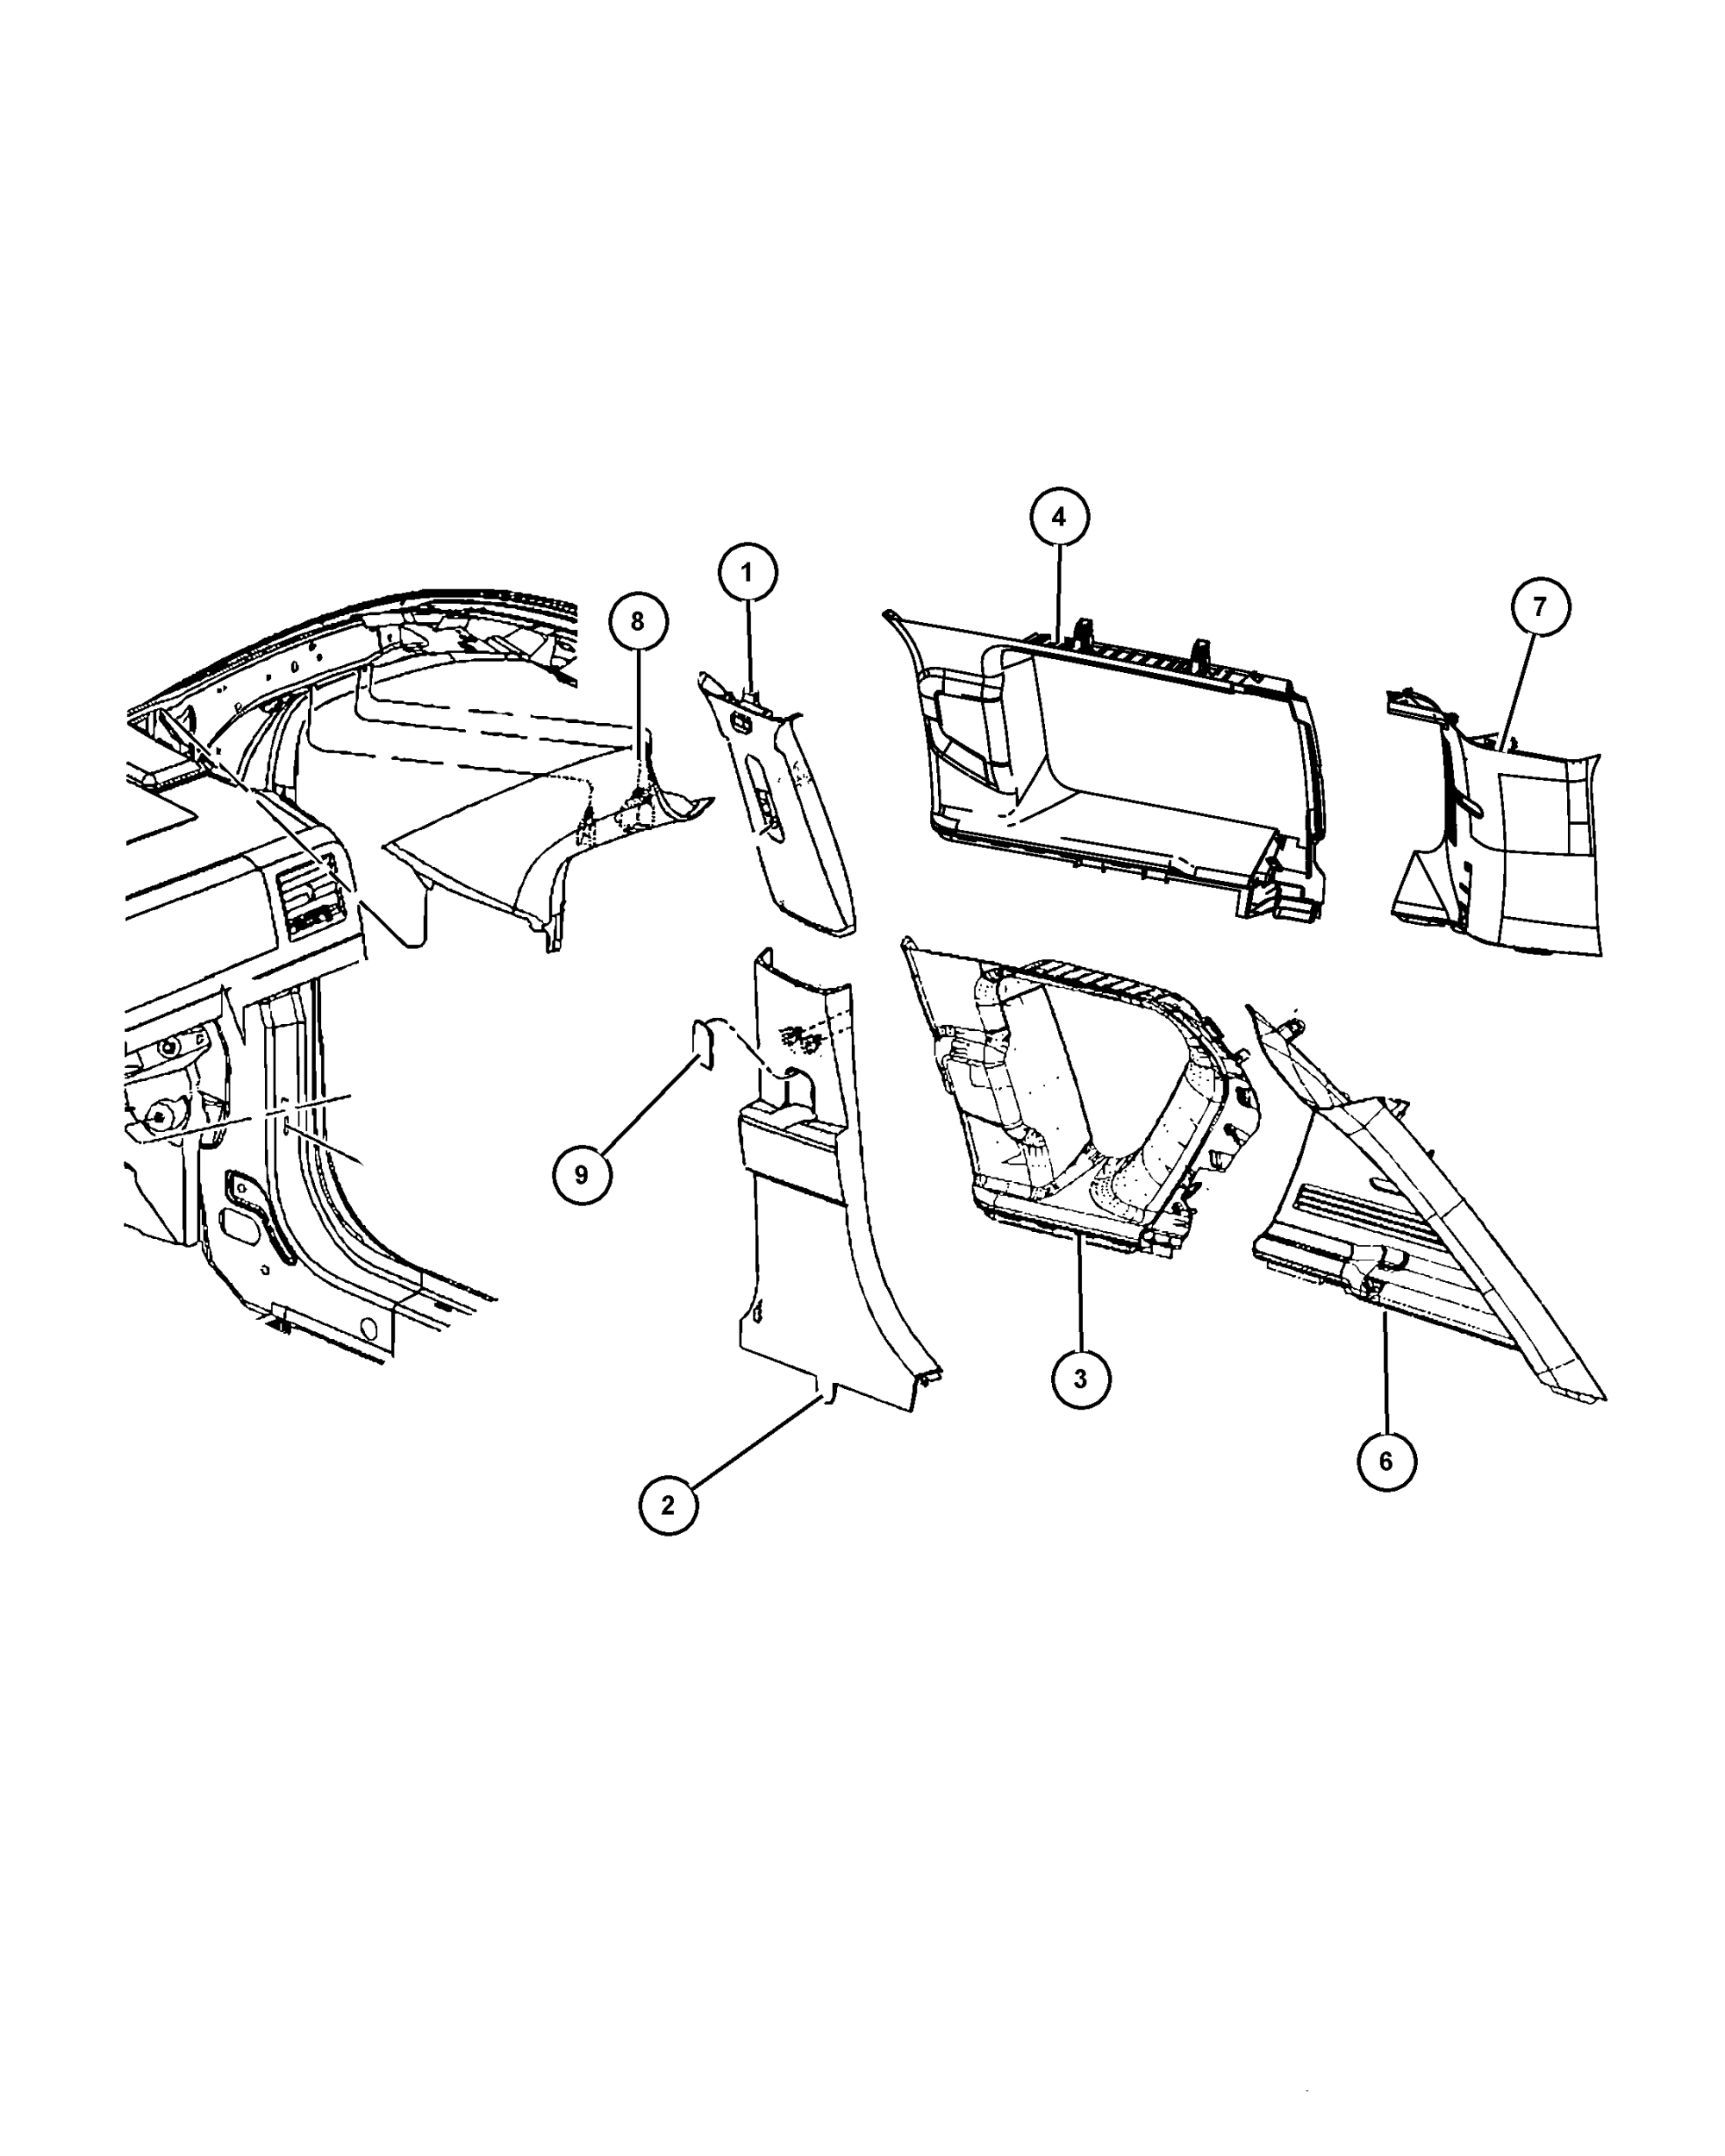 hight resolution of jeep mk diagram wiring diagrams jeep mk diagram